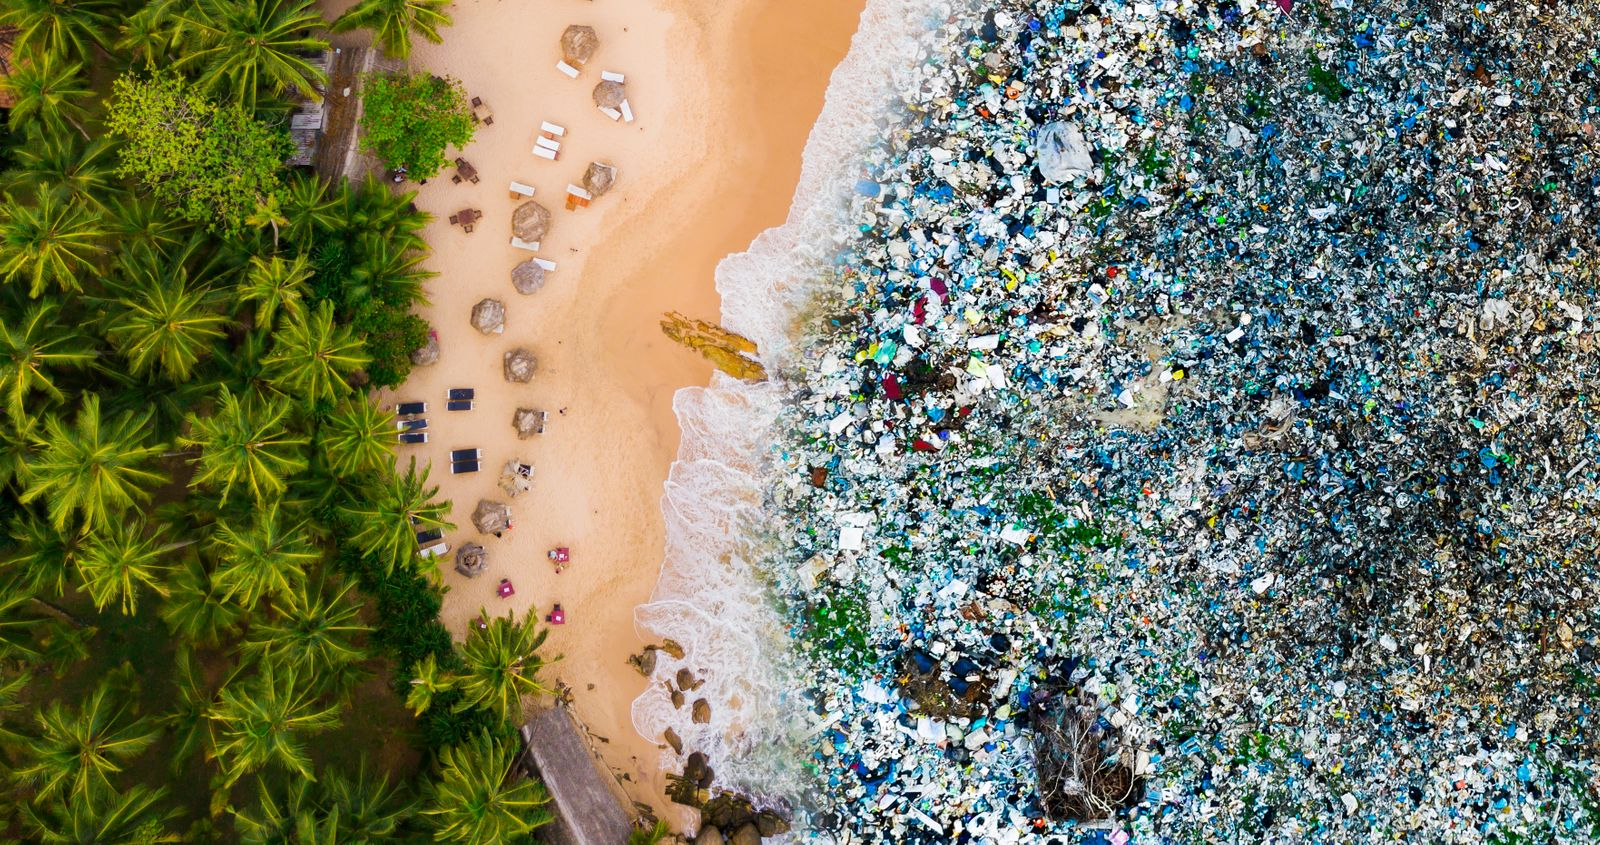 Tropical beach and trash in the water. Ocean pollution concept with plastic and garbage